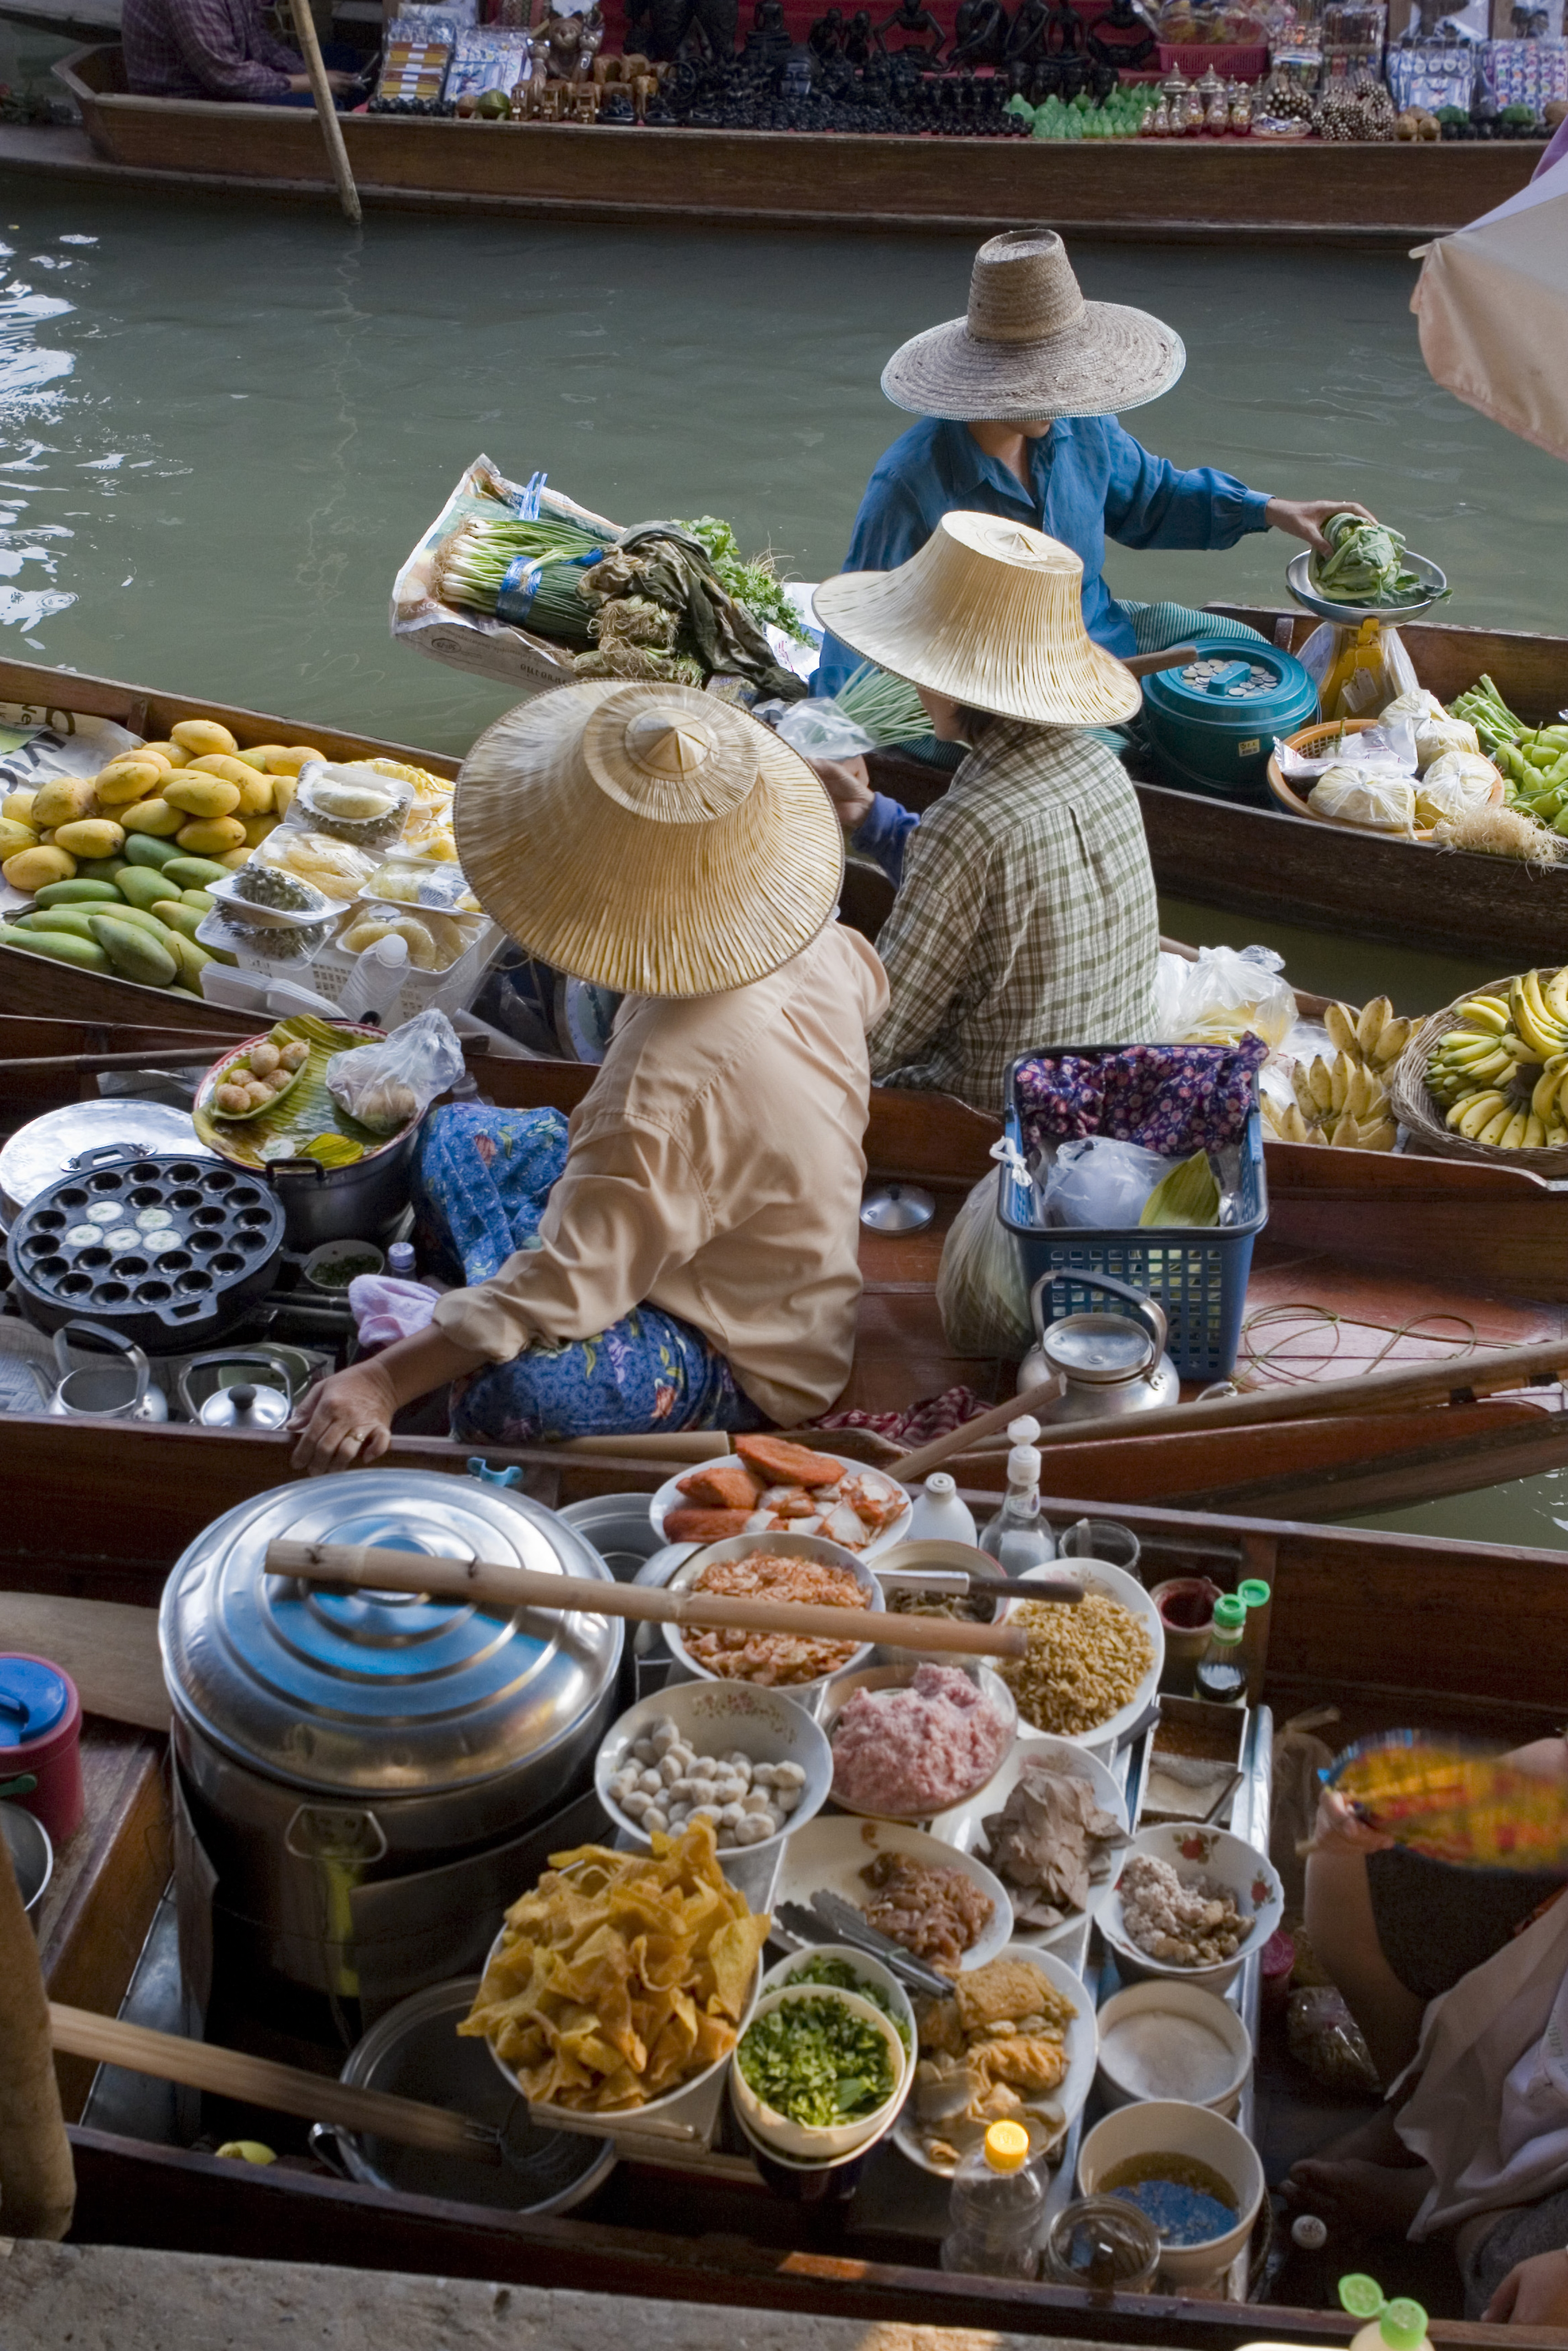 The colourful floating markets in Thailand are where farmers bring their produce to sell from small boats. Photo © Michele Falzone/JAI/Corbis